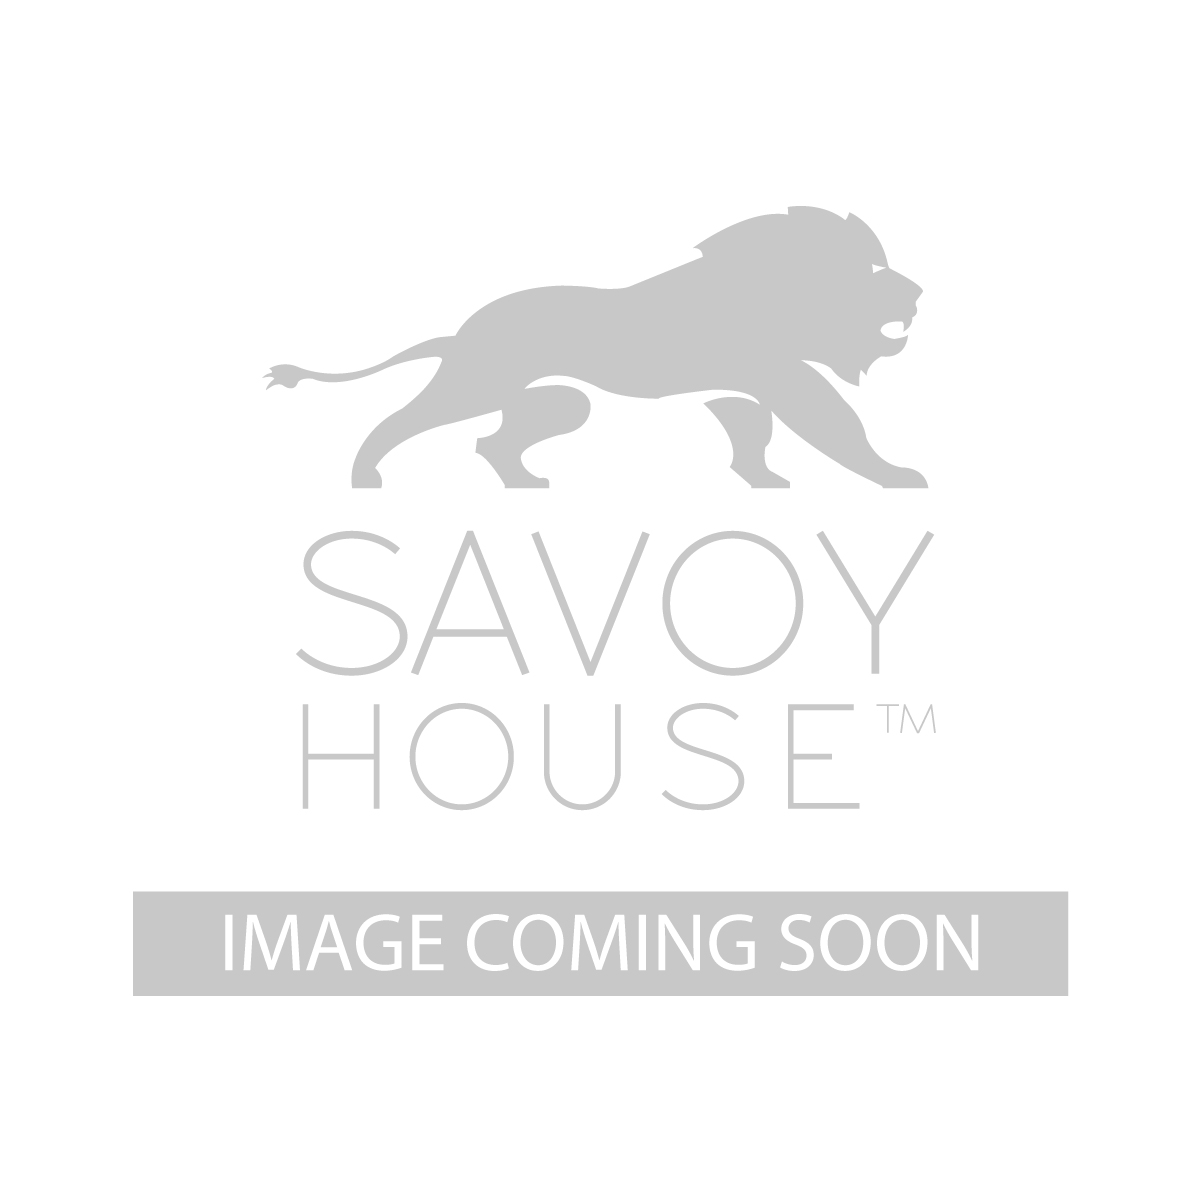 72 5045 8gr gr bluffton 72 inch 8 blade ceiling fan by savoy house bluffton 72 8 blade ceiling fan aloadofball Image collections